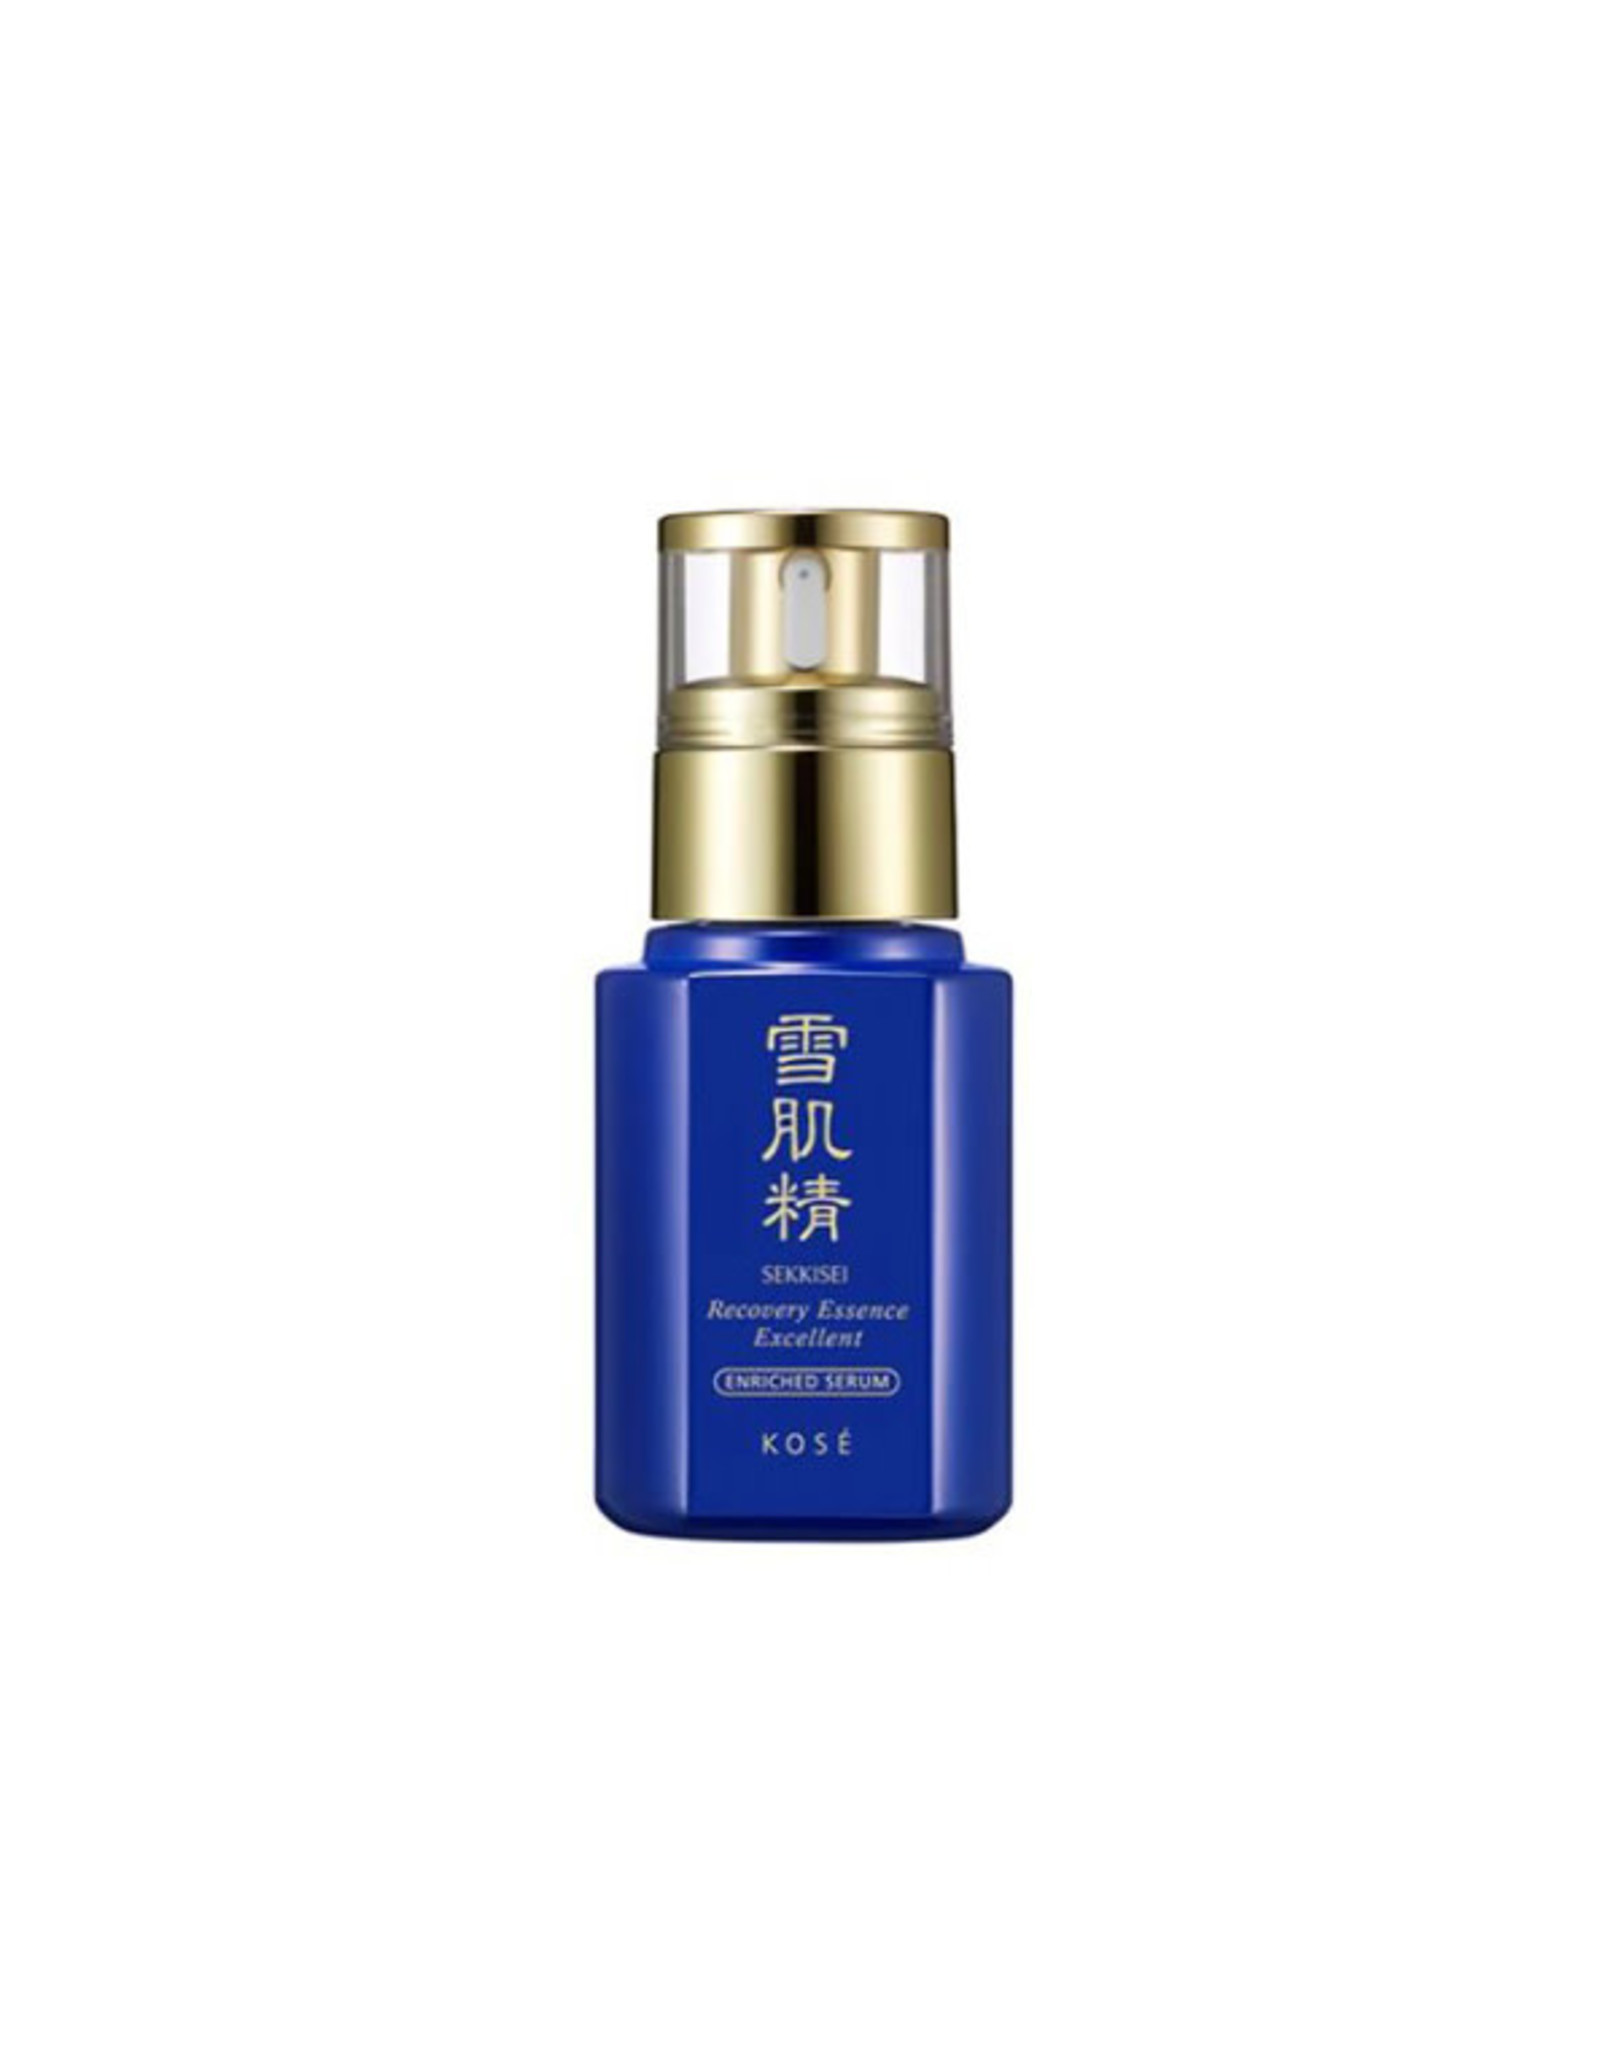 Kose Kose Sekkisei Recovery Essence Excellent New